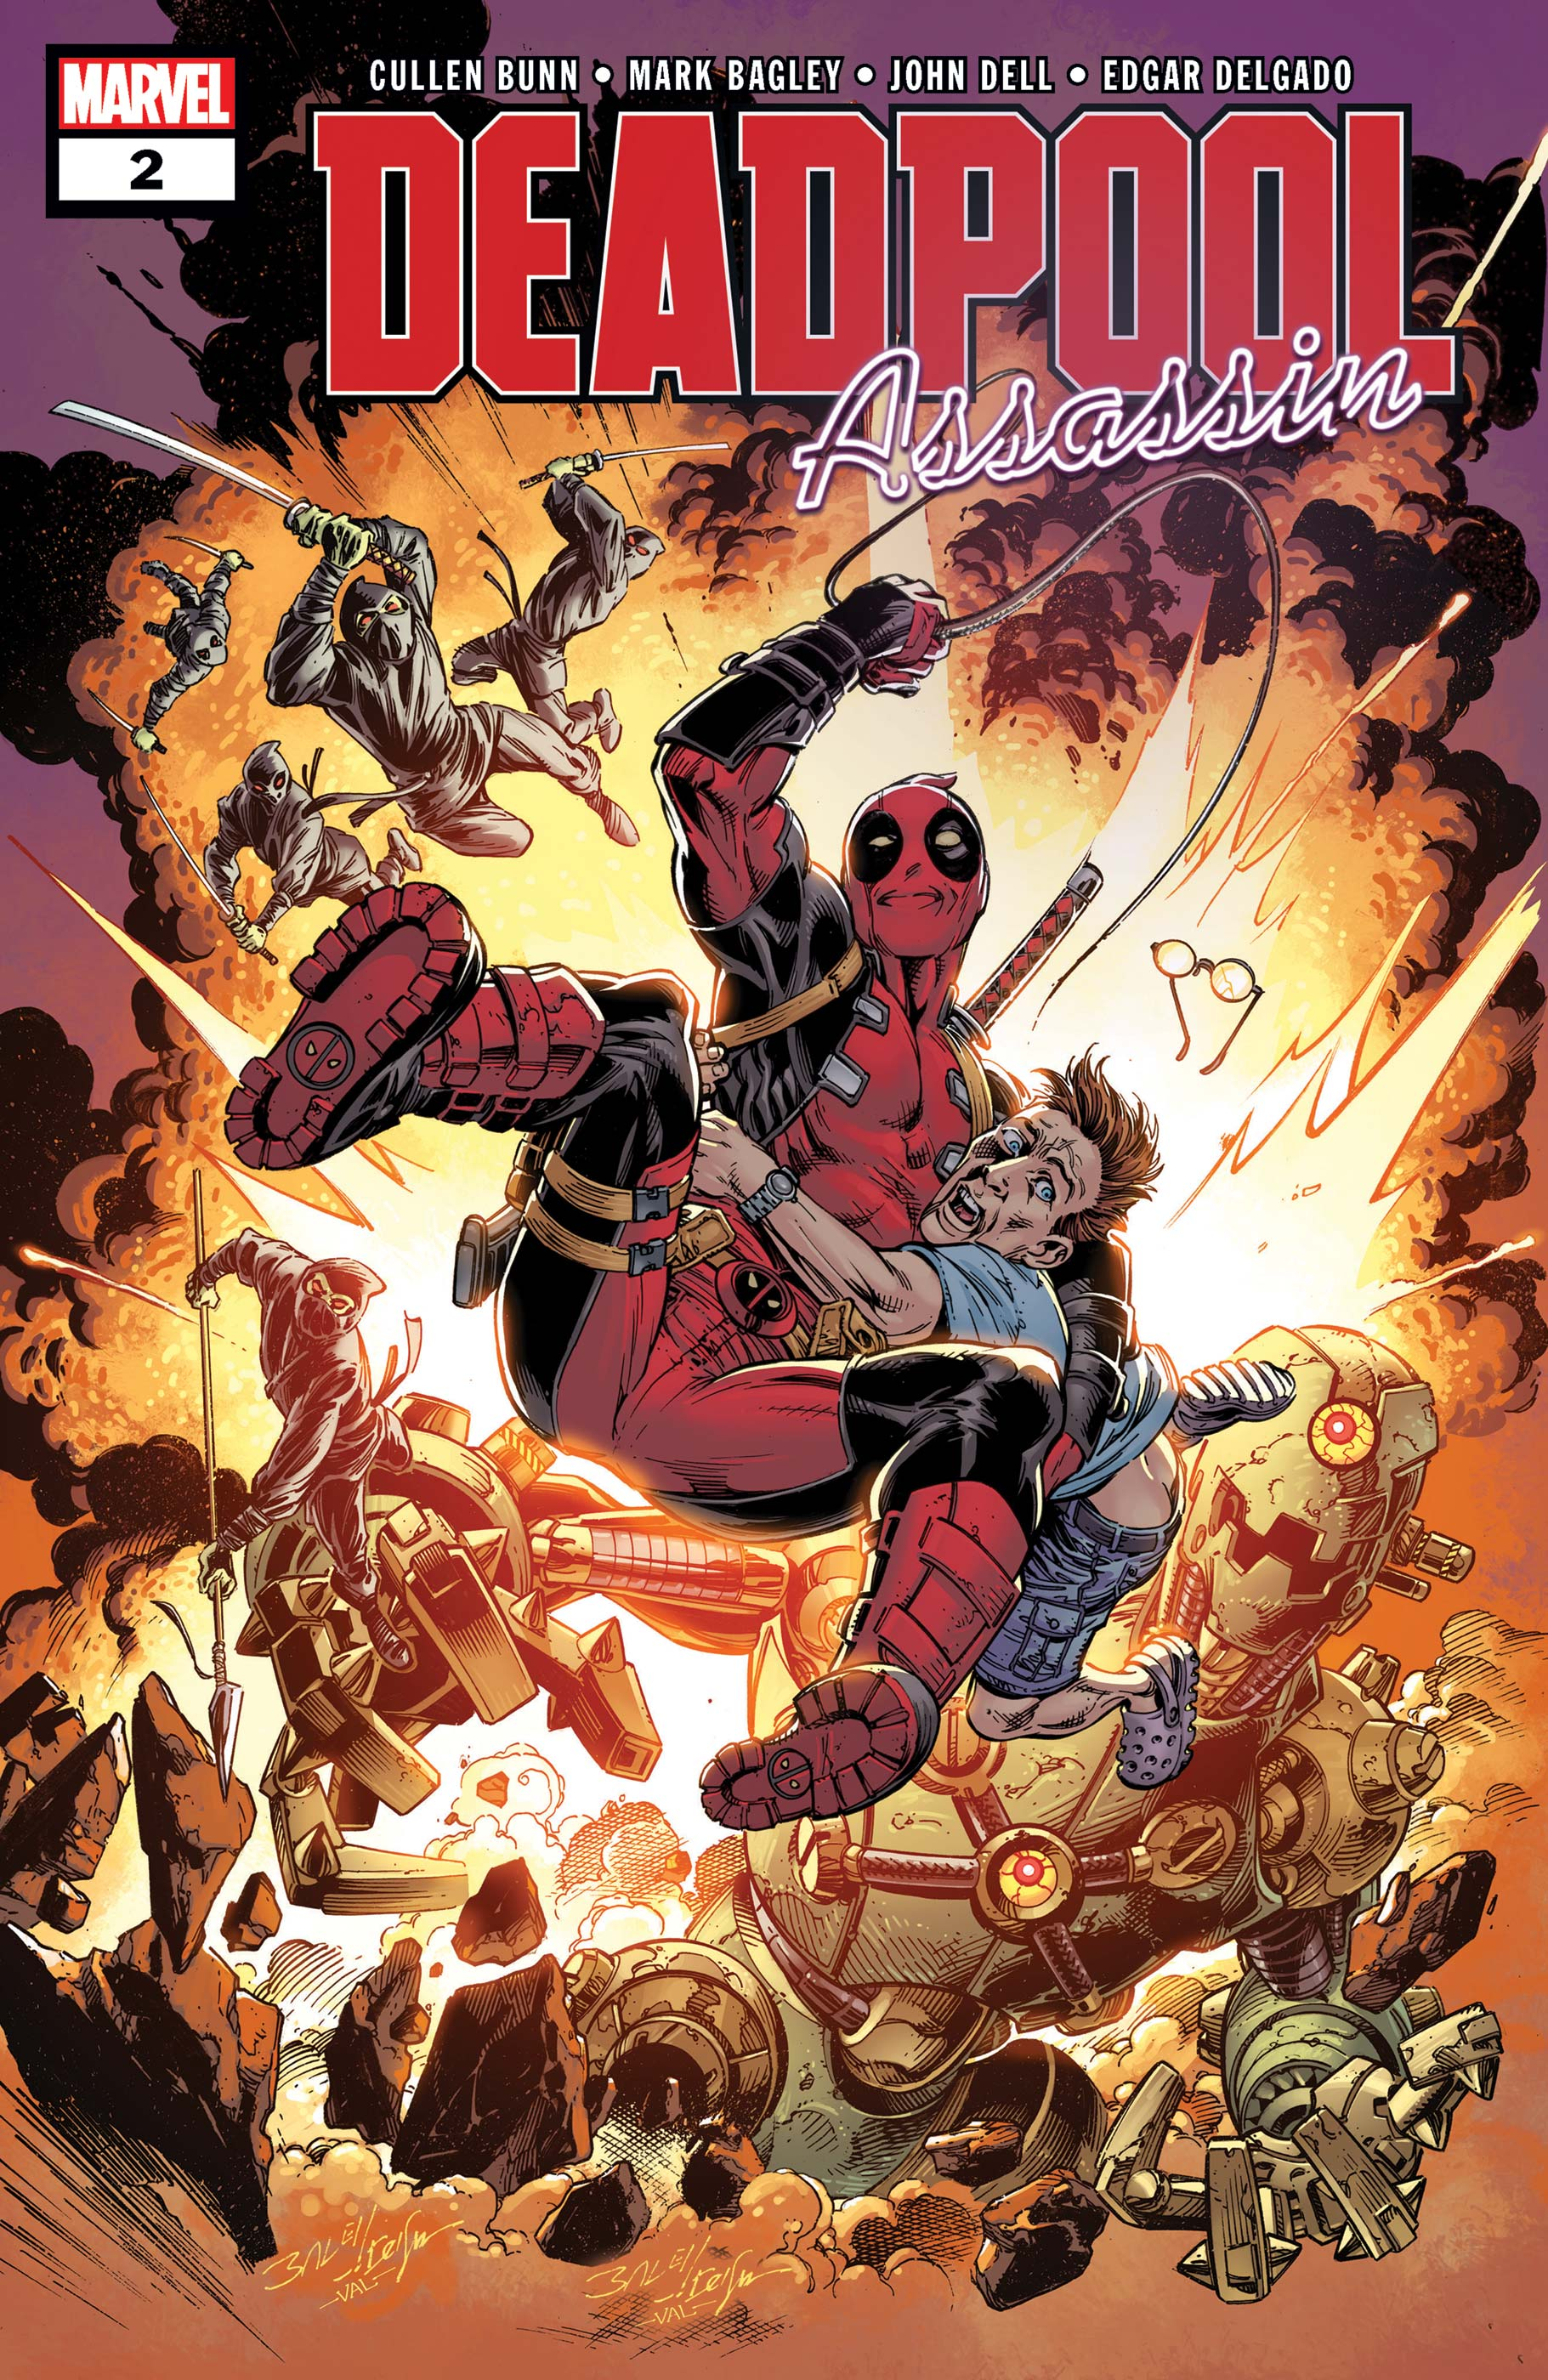 Deadpool: Assassin (2018) #2